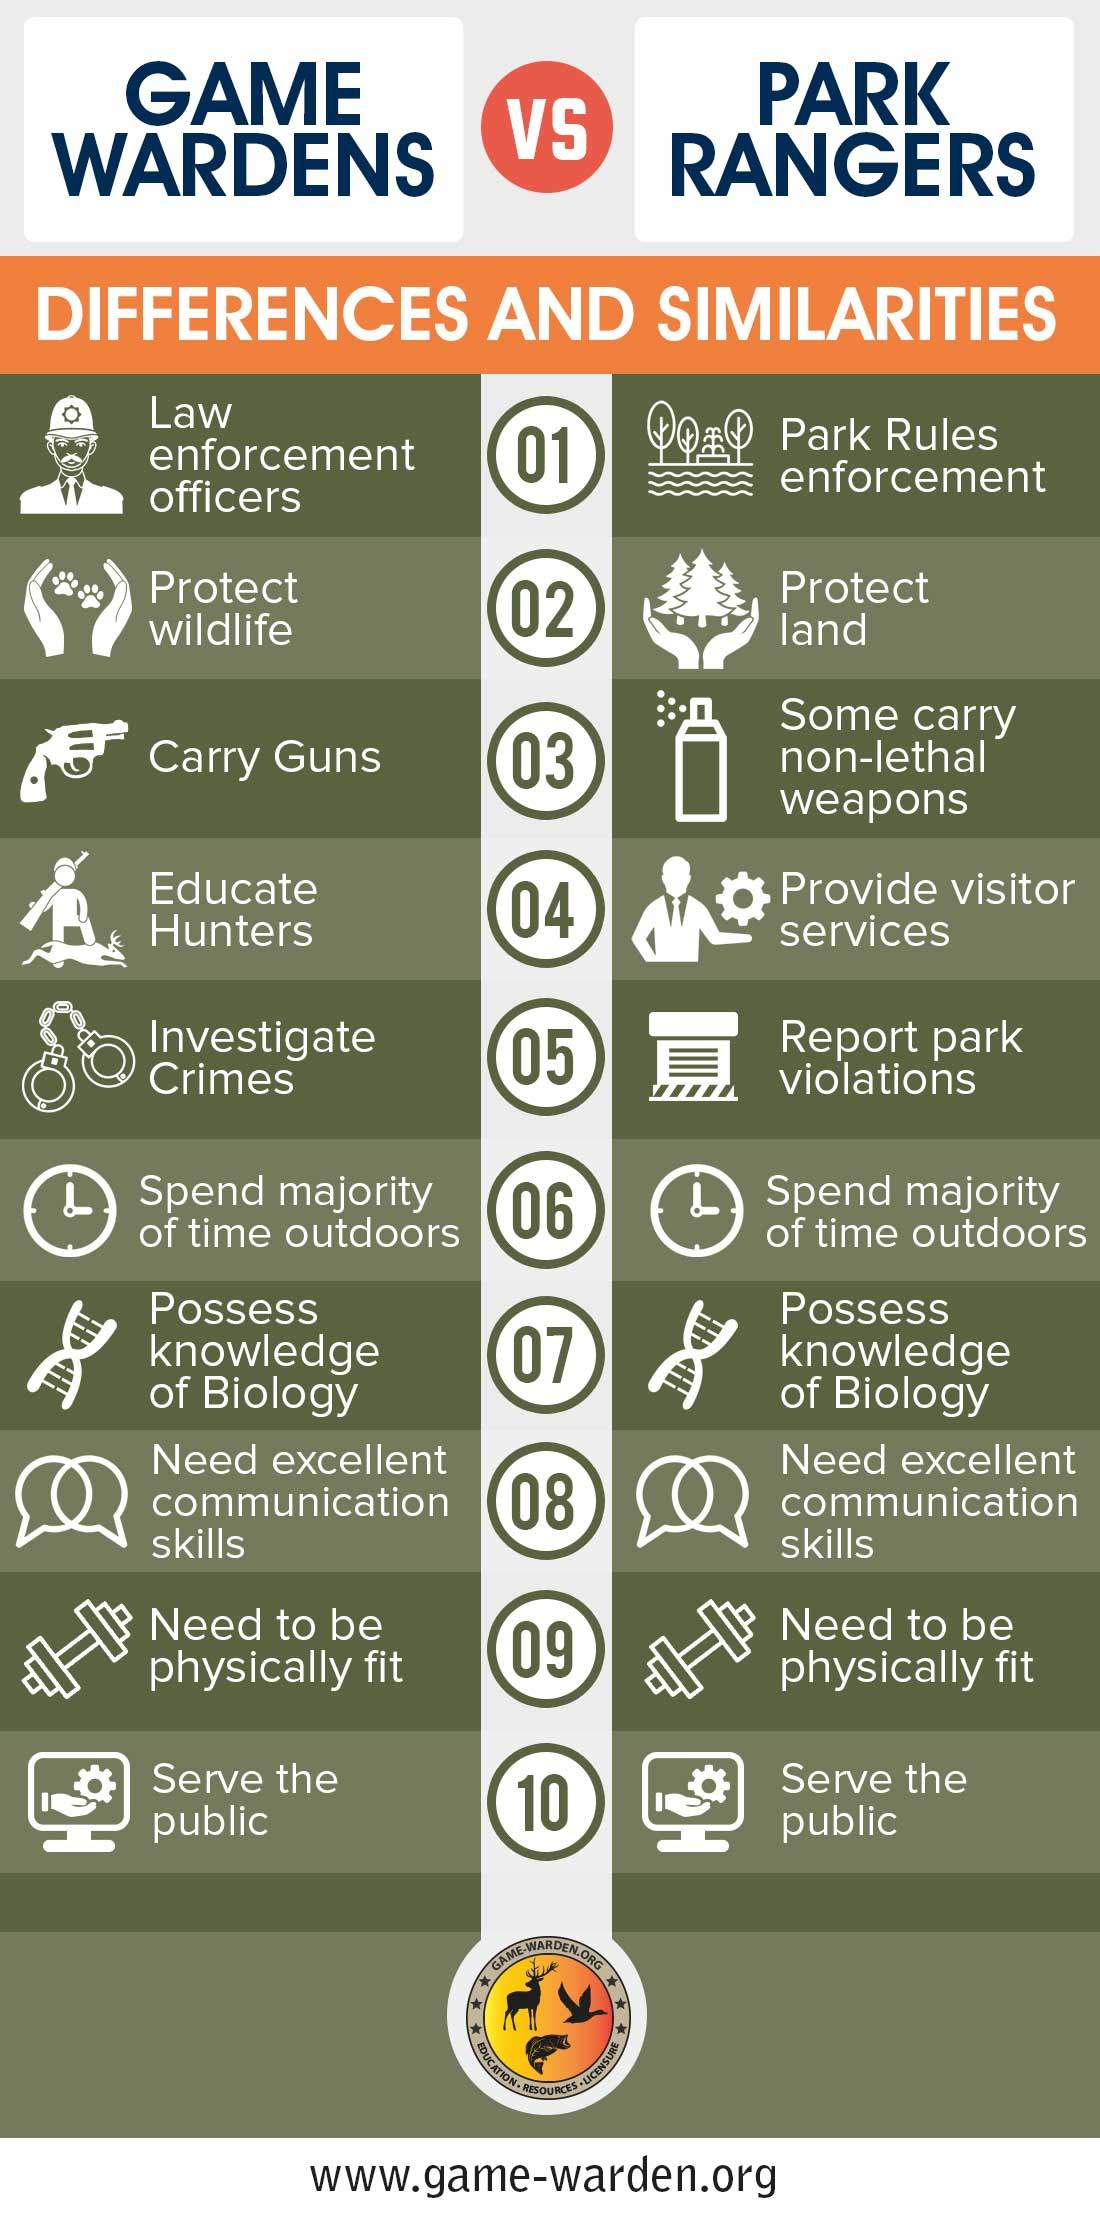 Difference Between Game Wardens and Park Rangers